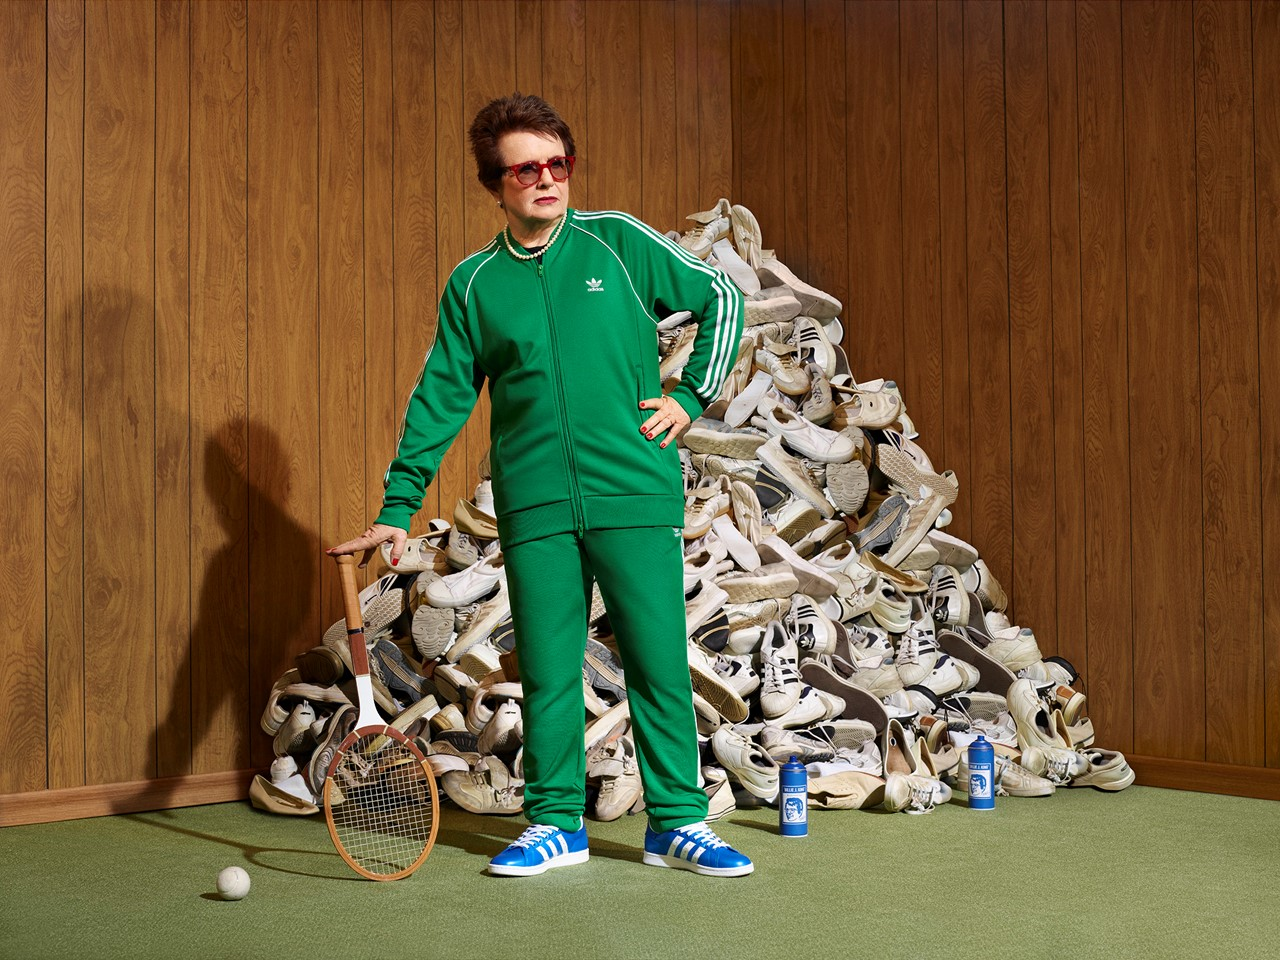 ADIDAS X BILLIE JEAN KING - Cannes Golden Lion Award